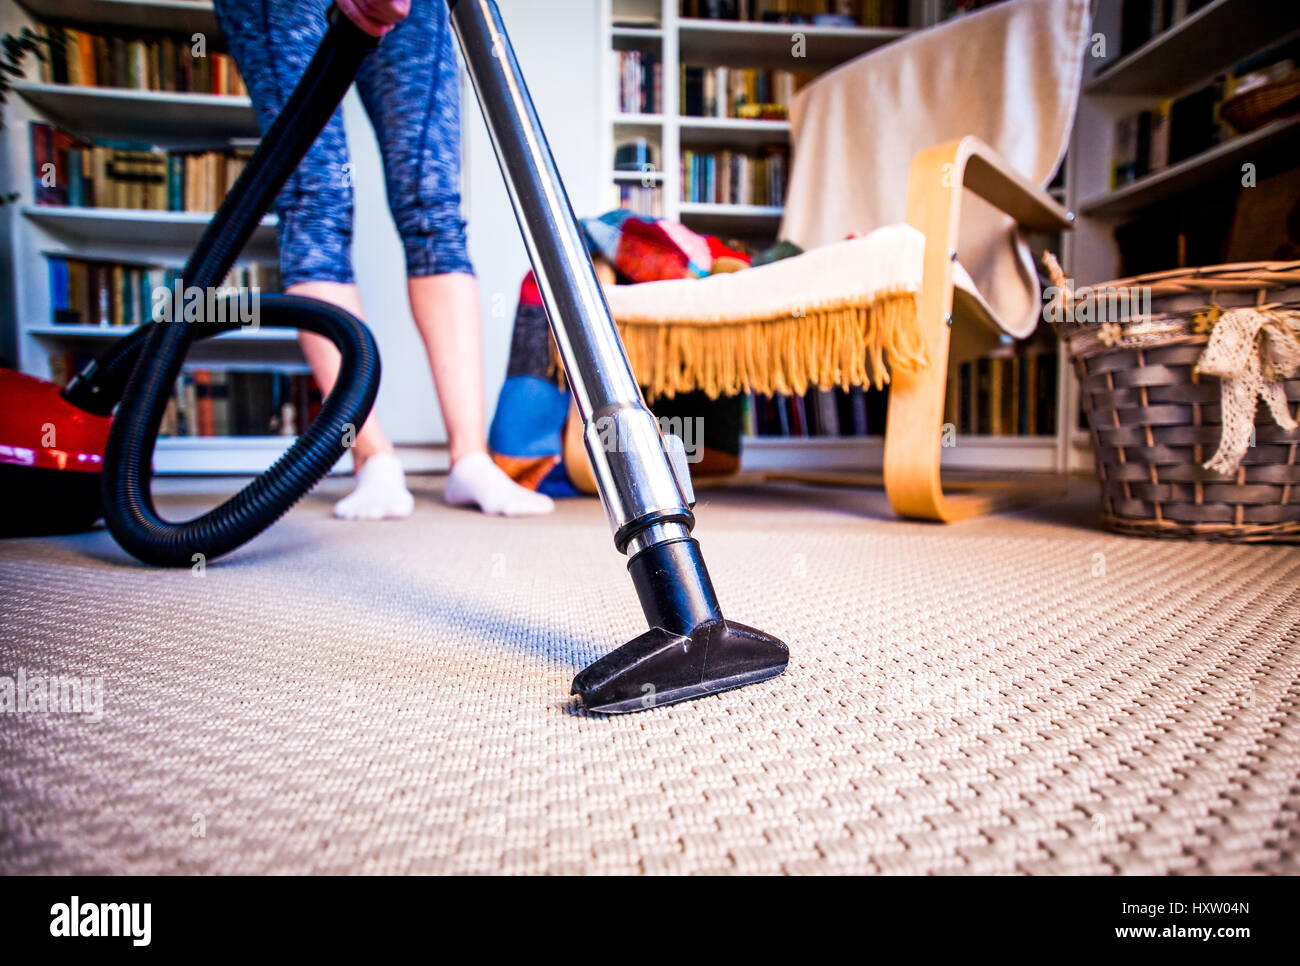 Teppich Reinigen Staubsauger Mieten Woman Vacuuming Stockfotos And Woman Vacuuming Bilder Alamy